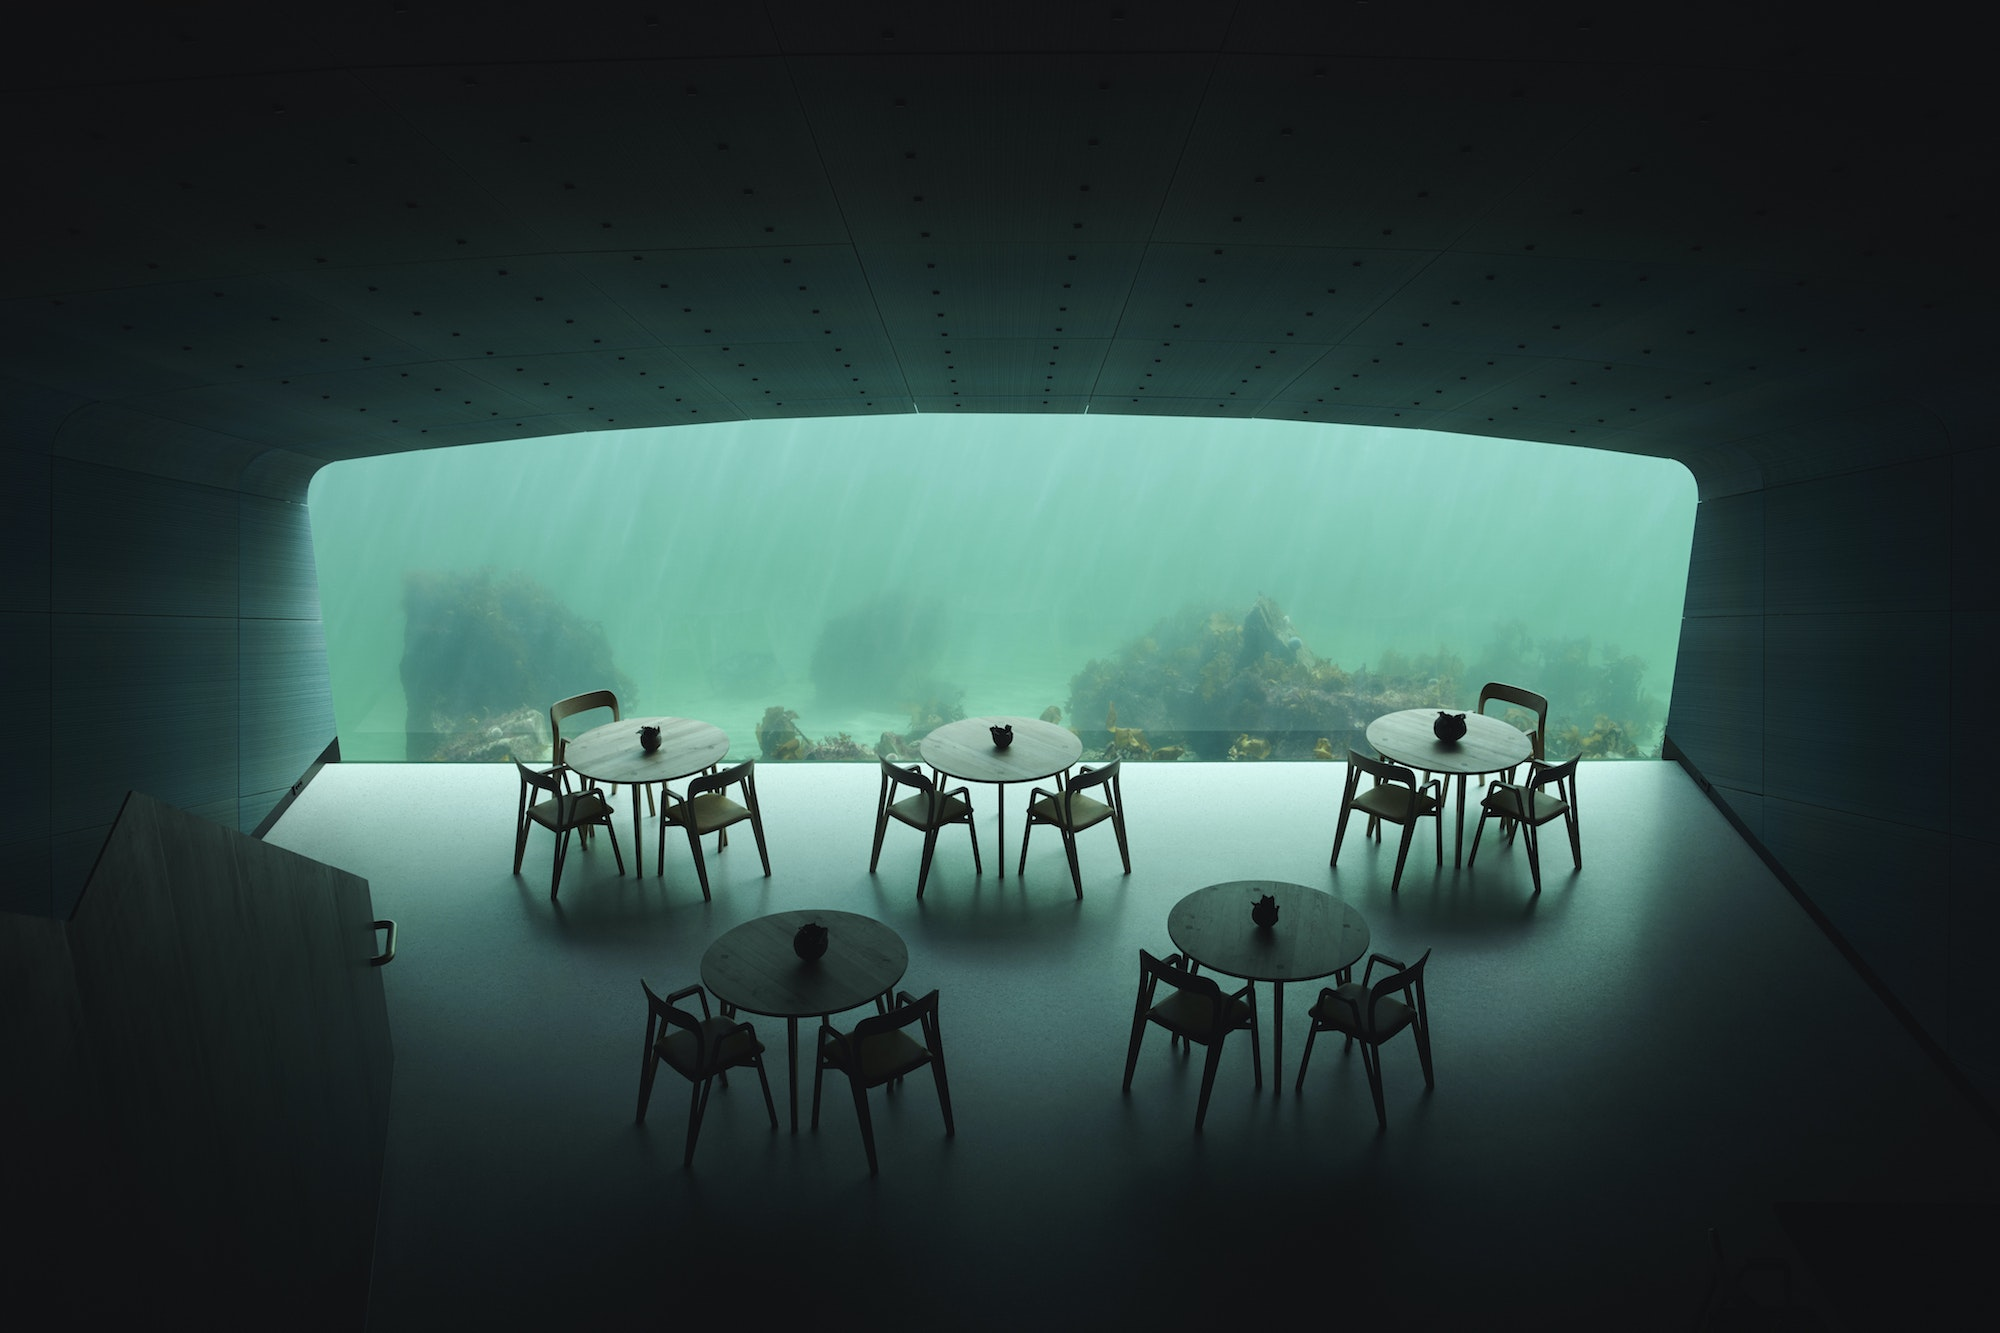 Under's massive dining room window offers a view of the seabed as it changes throughout seasons and varying weather conditions.